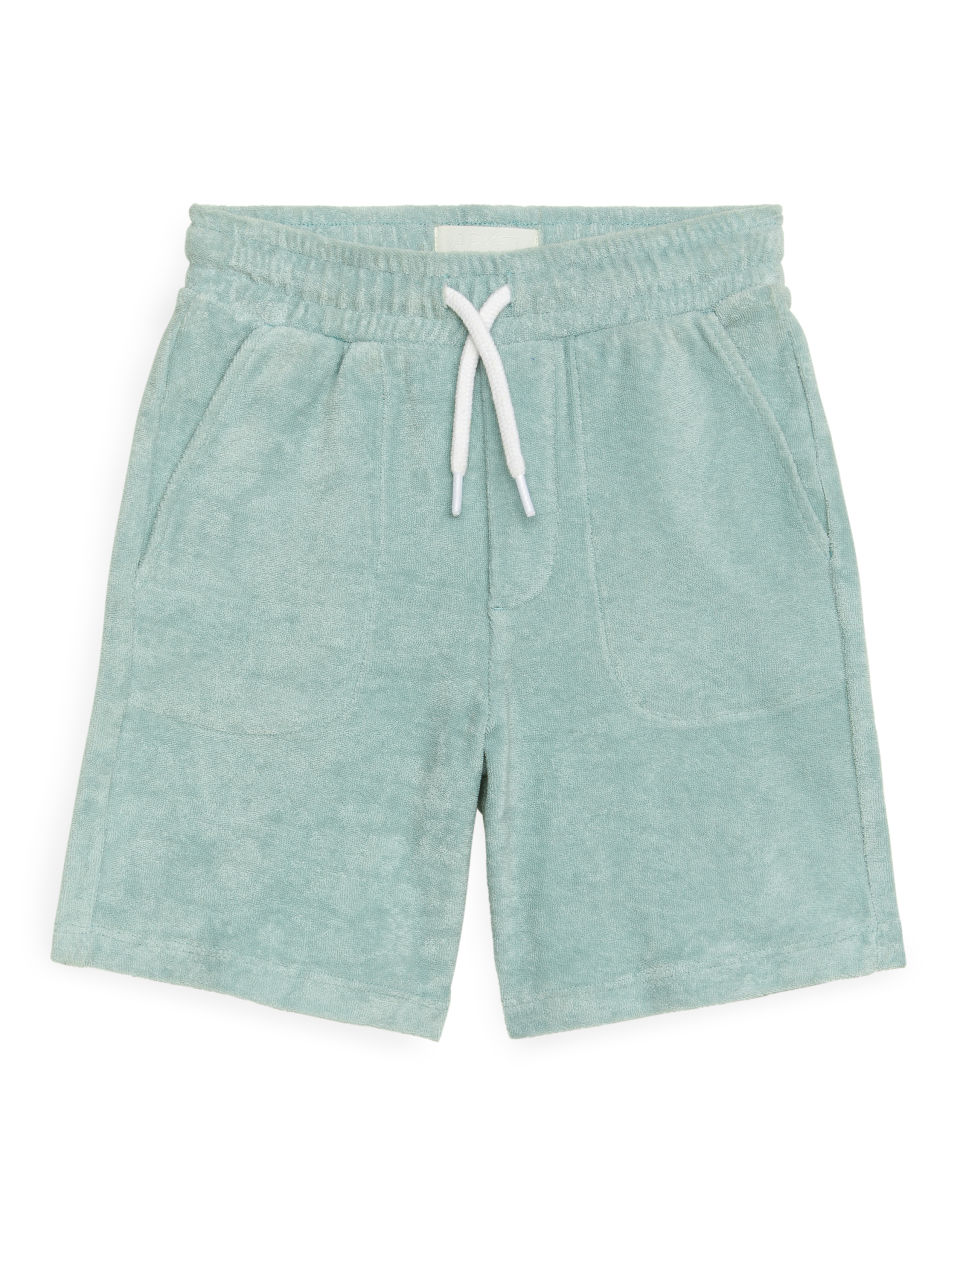 Cotton Towelling Shorts - Turquoise